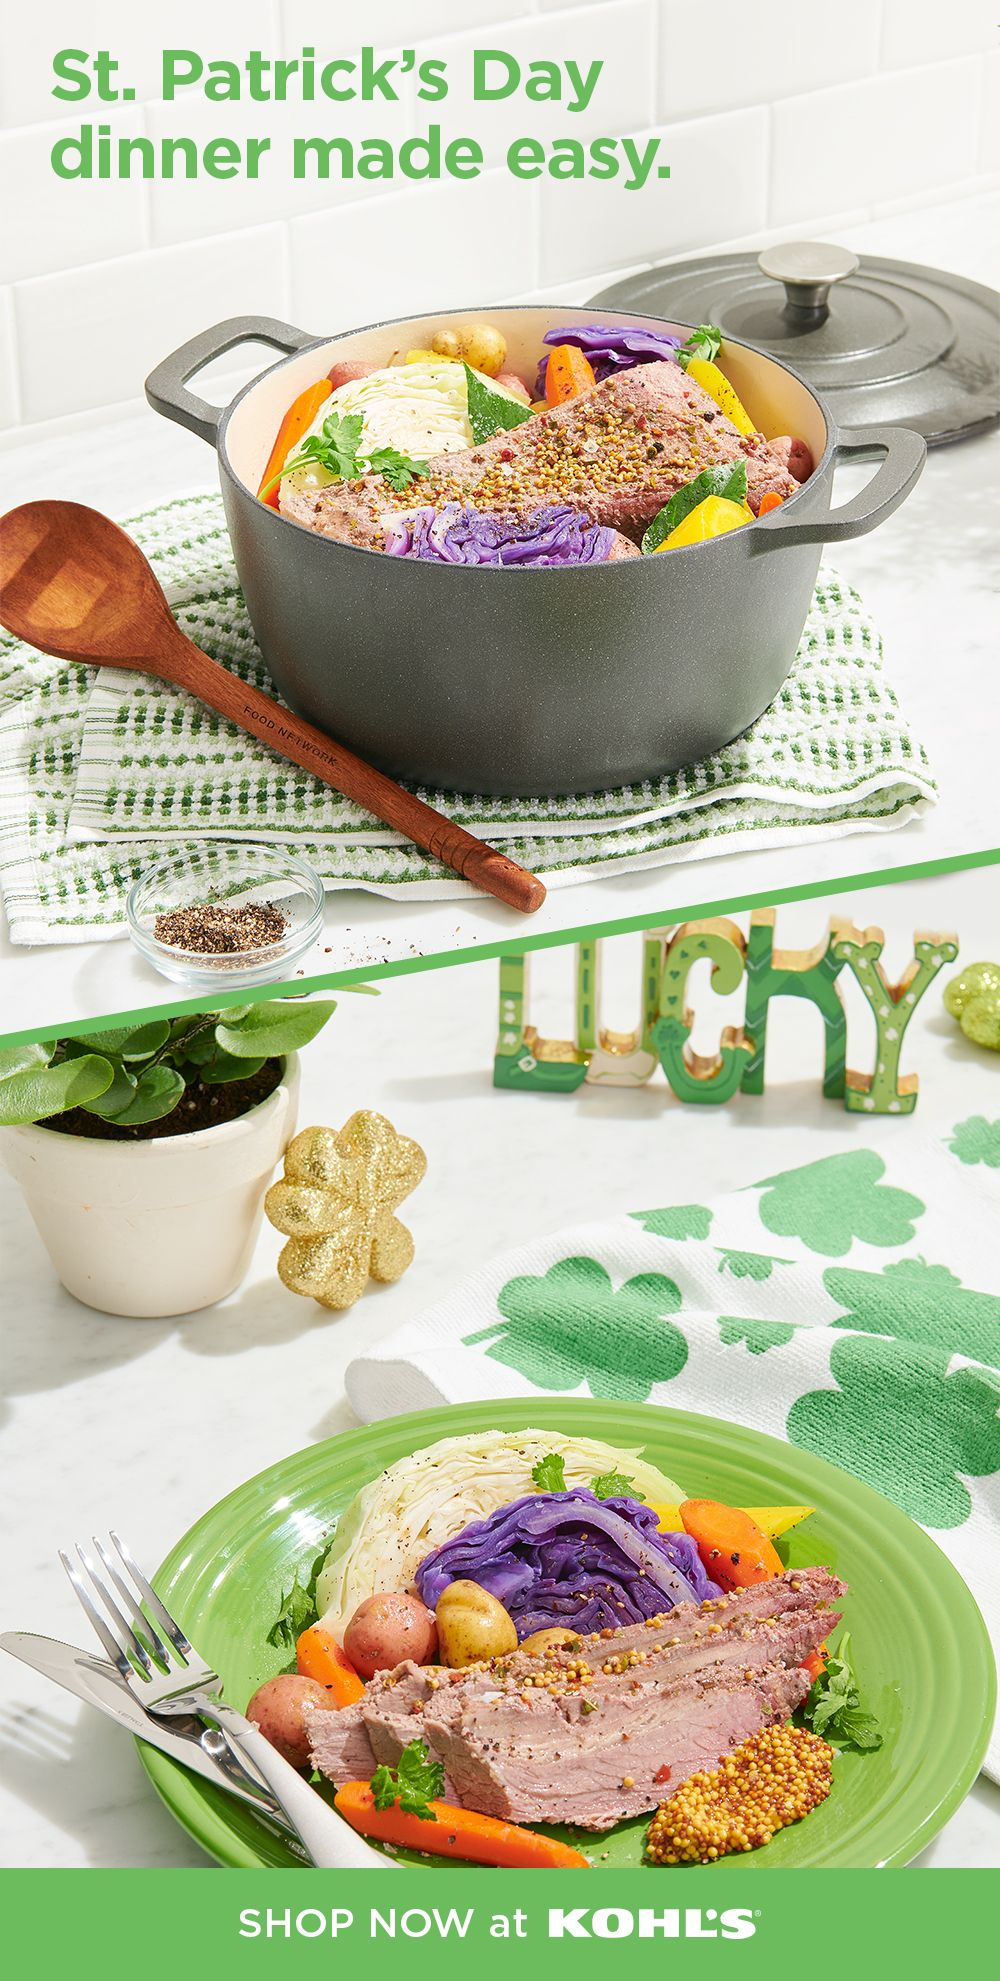 St. Patrick's Day is nearly here! As luck would have it, we have everything you need to fix the perfect Irish-inspired feast. Use Food Network cast-iron cookware to whip up some delicious corned beef and cabbage, and then serve it up on festive green Fiesta dishes. Shop St. Patrick's Day decor, plus dinnerware, cookware and more at Kohl's and Kohls.com. #StPatricksDay #mealprep